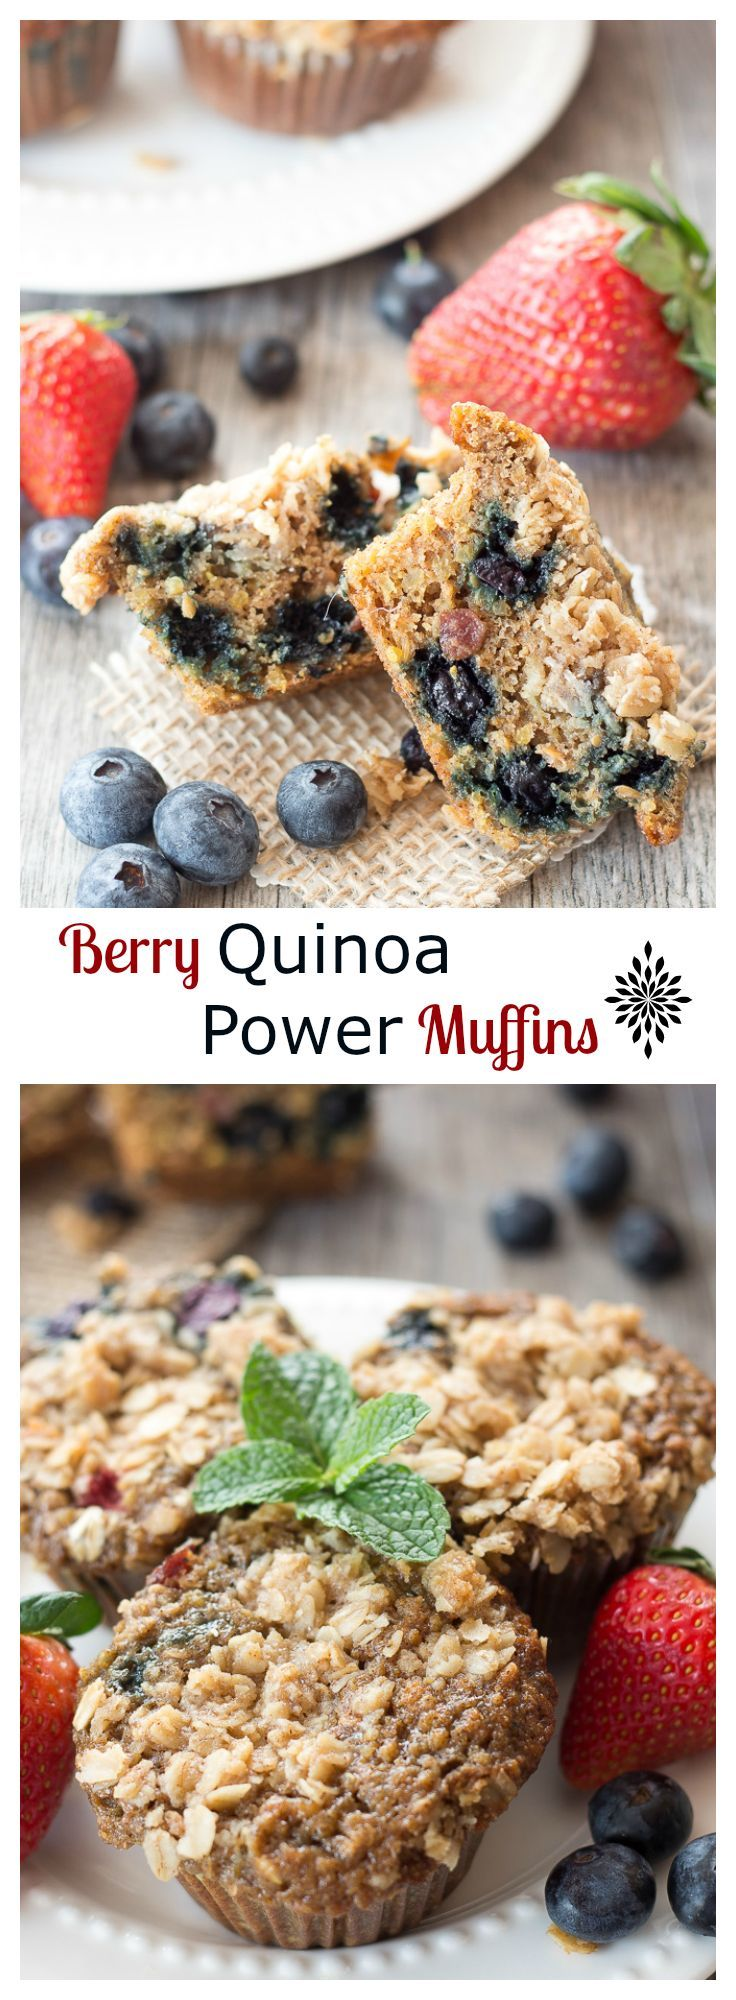 A healthy breakfast power muffin filled with juicy berries, quinoa, and oatmeal. Everything you need to start your day and to leave you feeling satisfied till lunch time. Protein packed and gluten free!